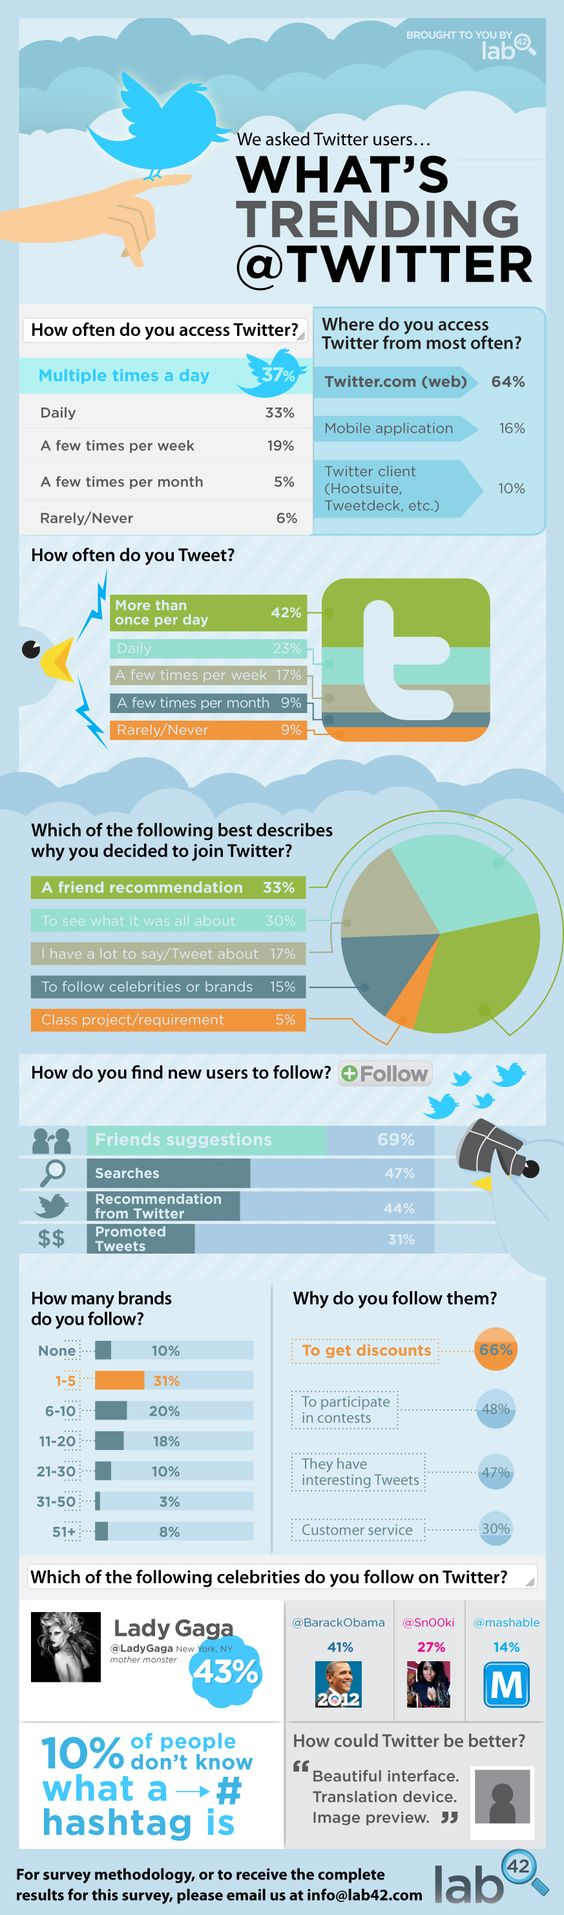 How do You Use Twitter? [INFOGRAPHIC]